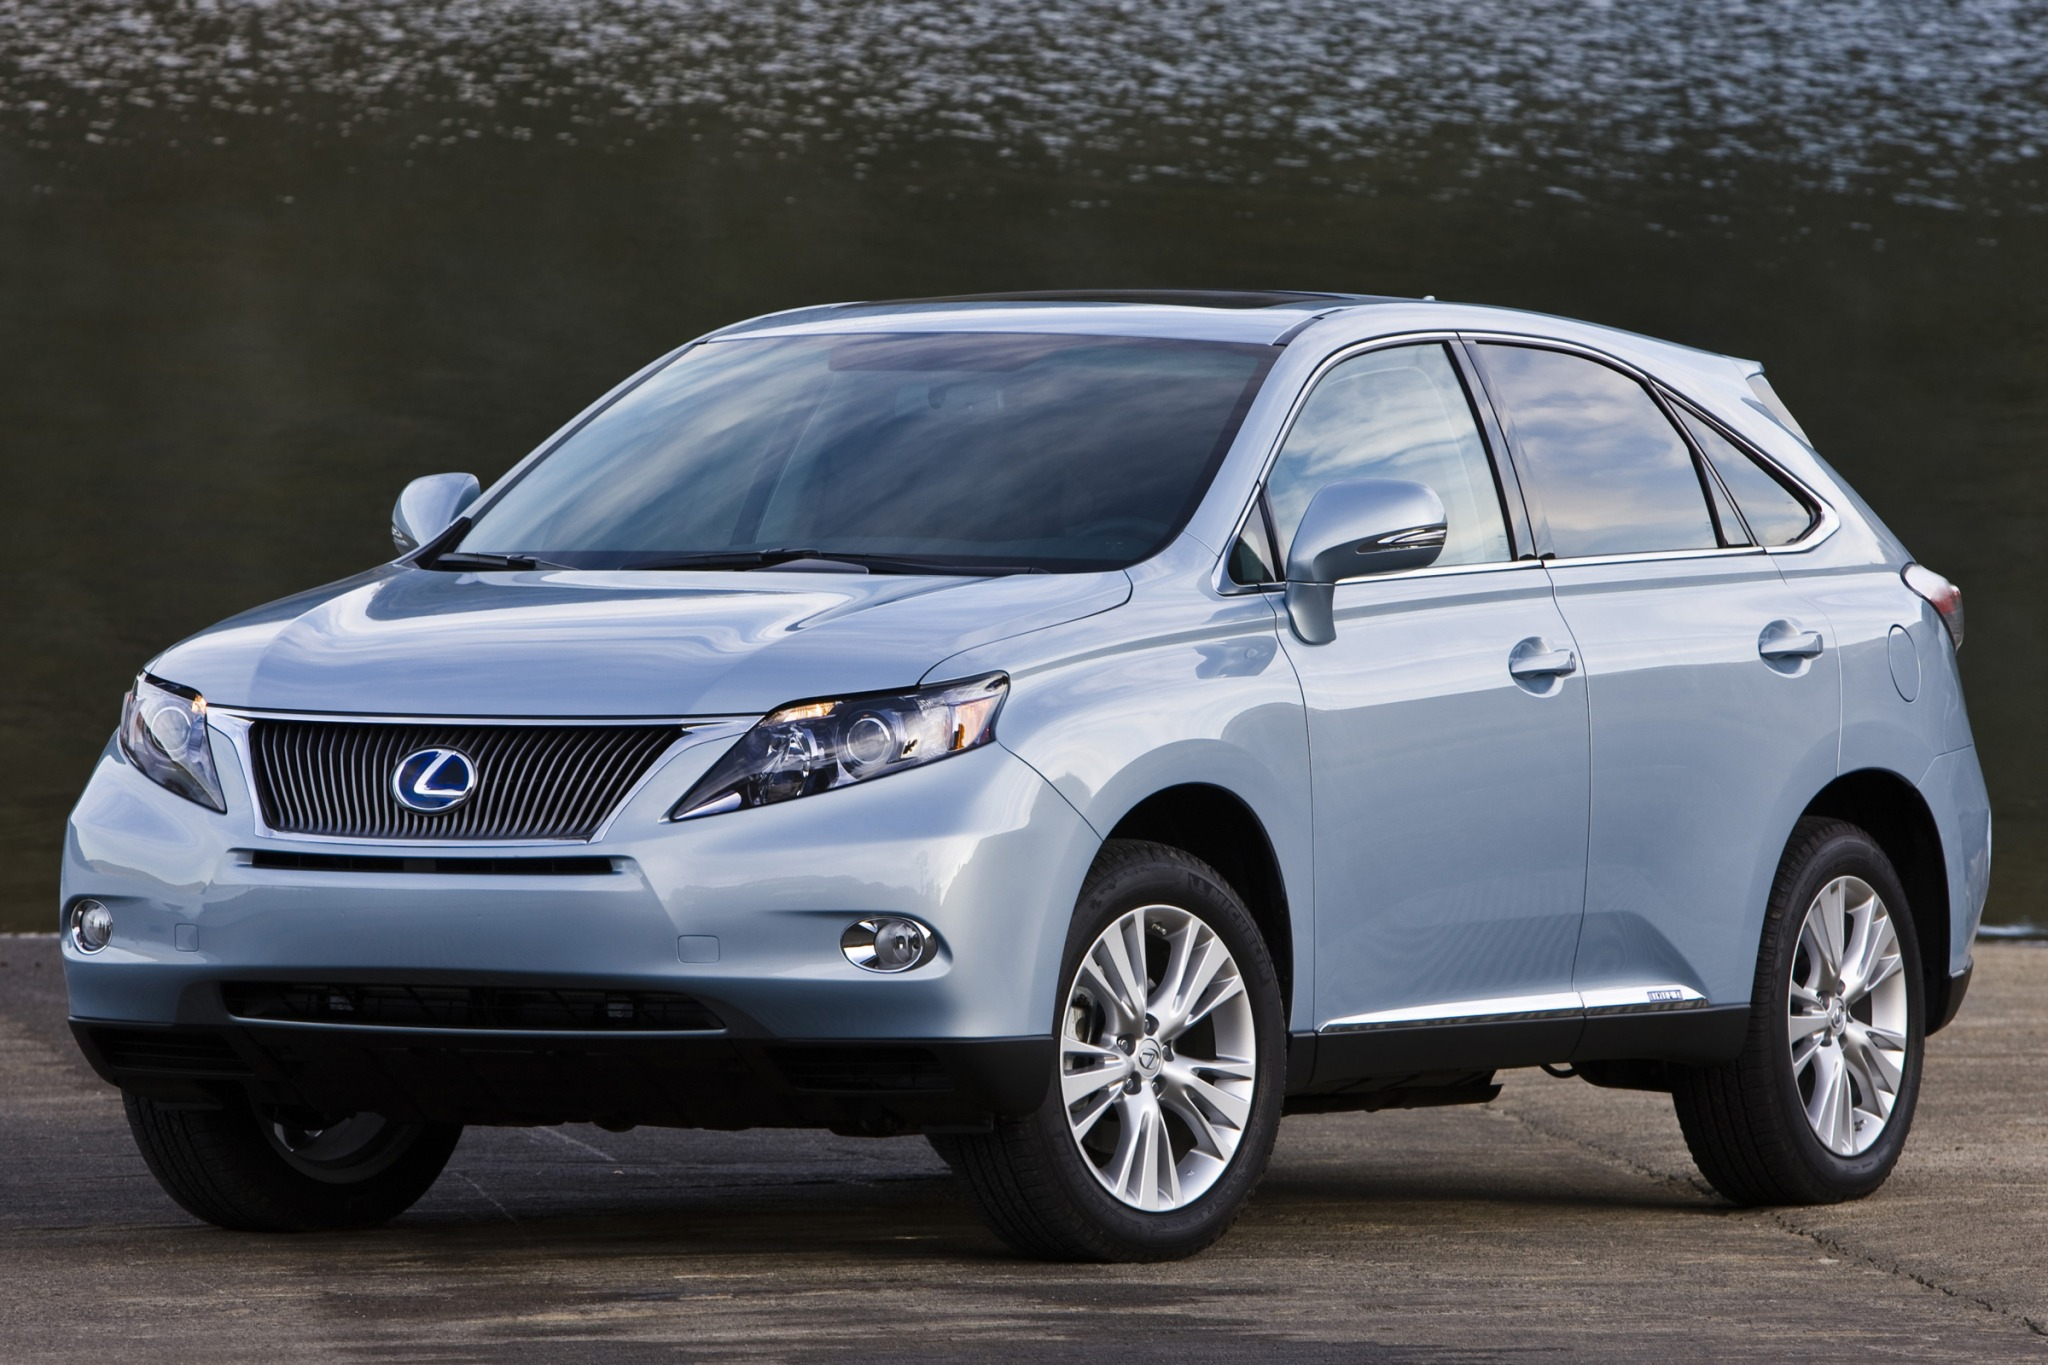 2010 Lexus RX 450h Information and photos ZombieDrive